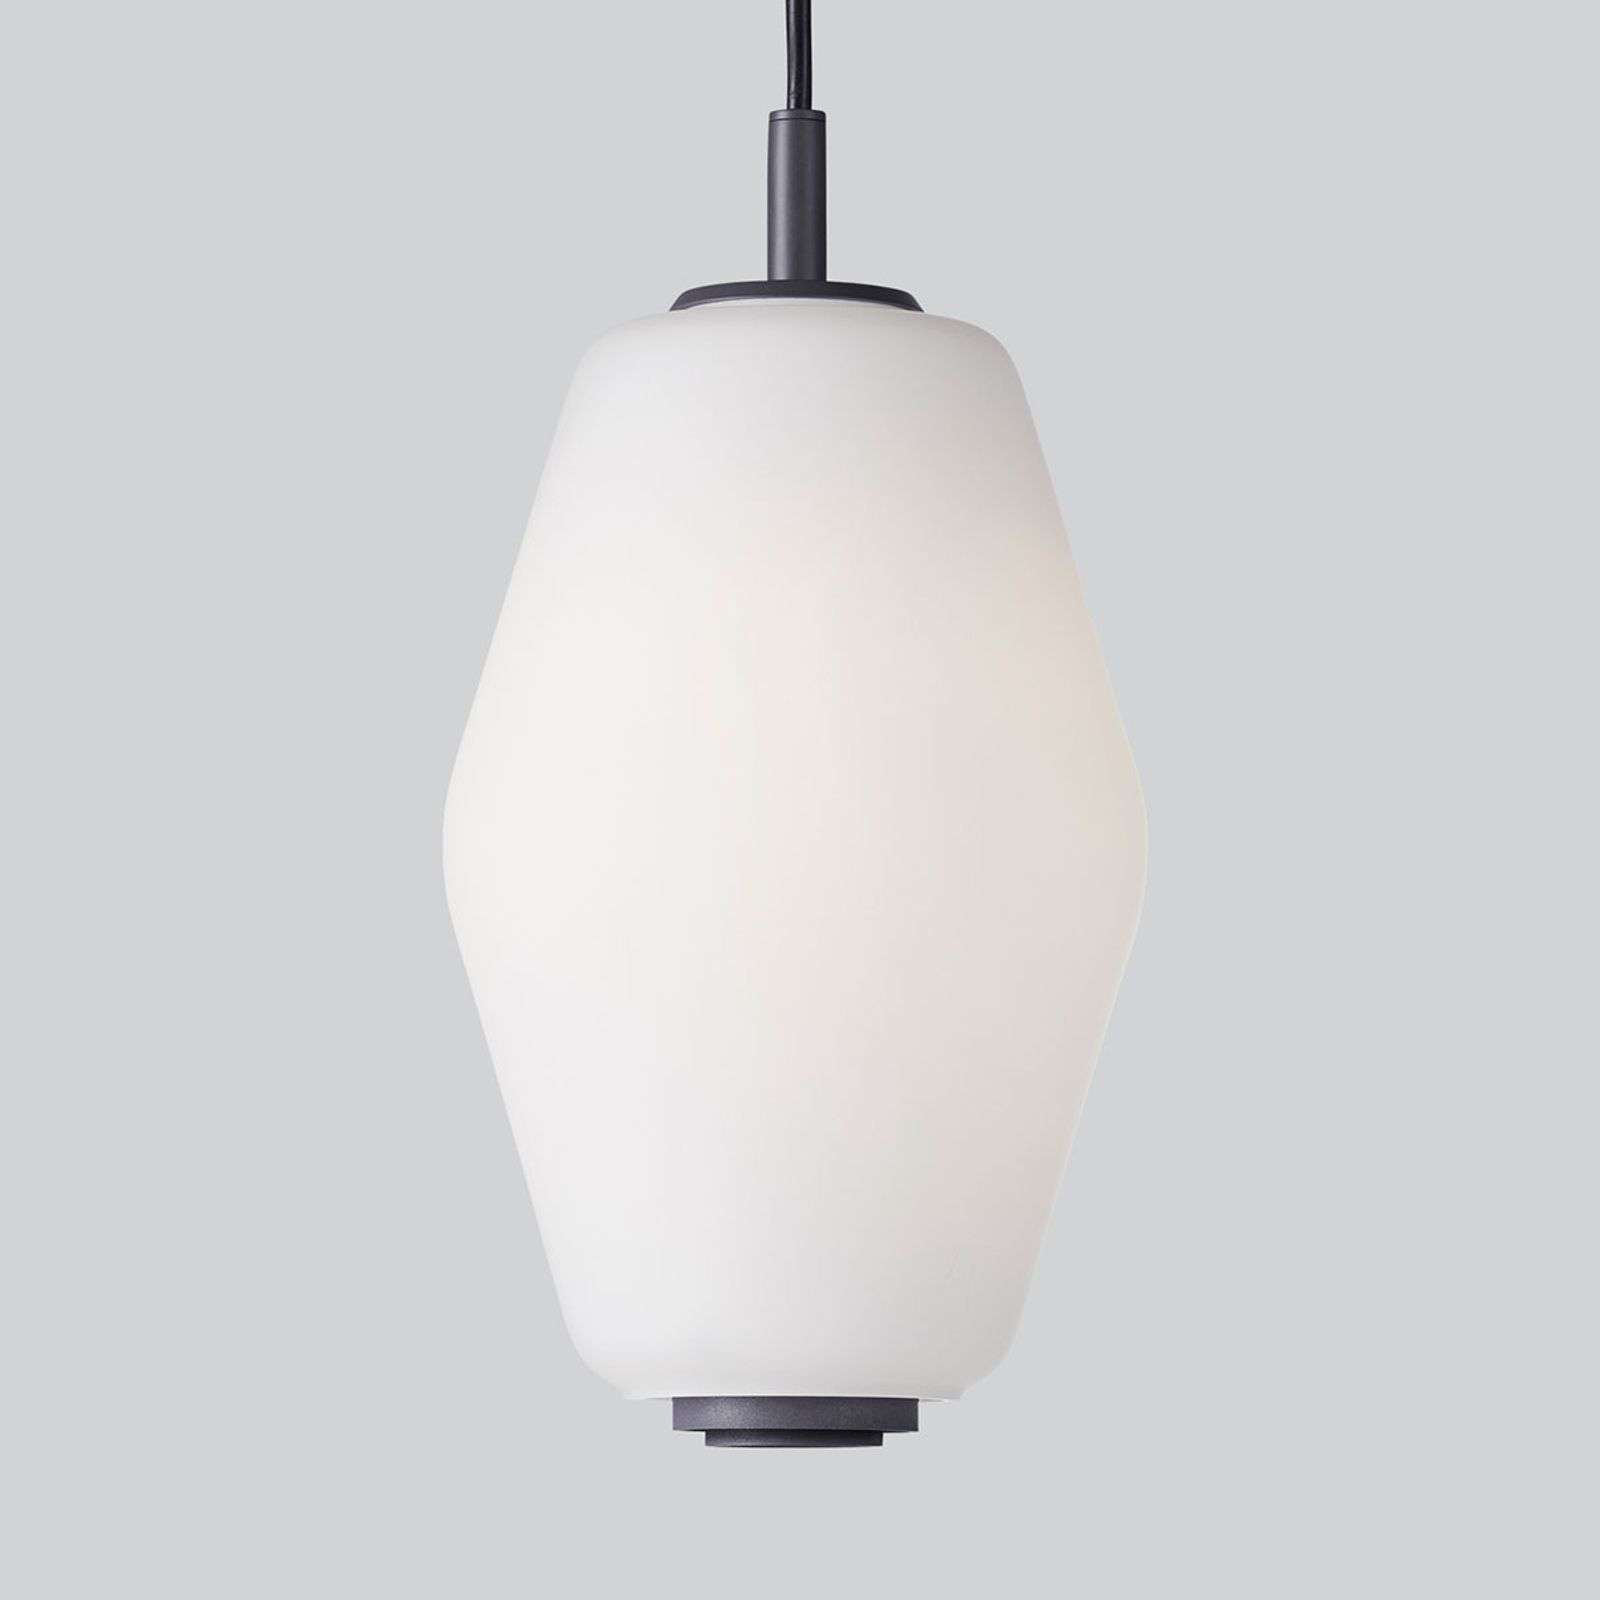 Northern Dahl hanglamp small donkergrijs